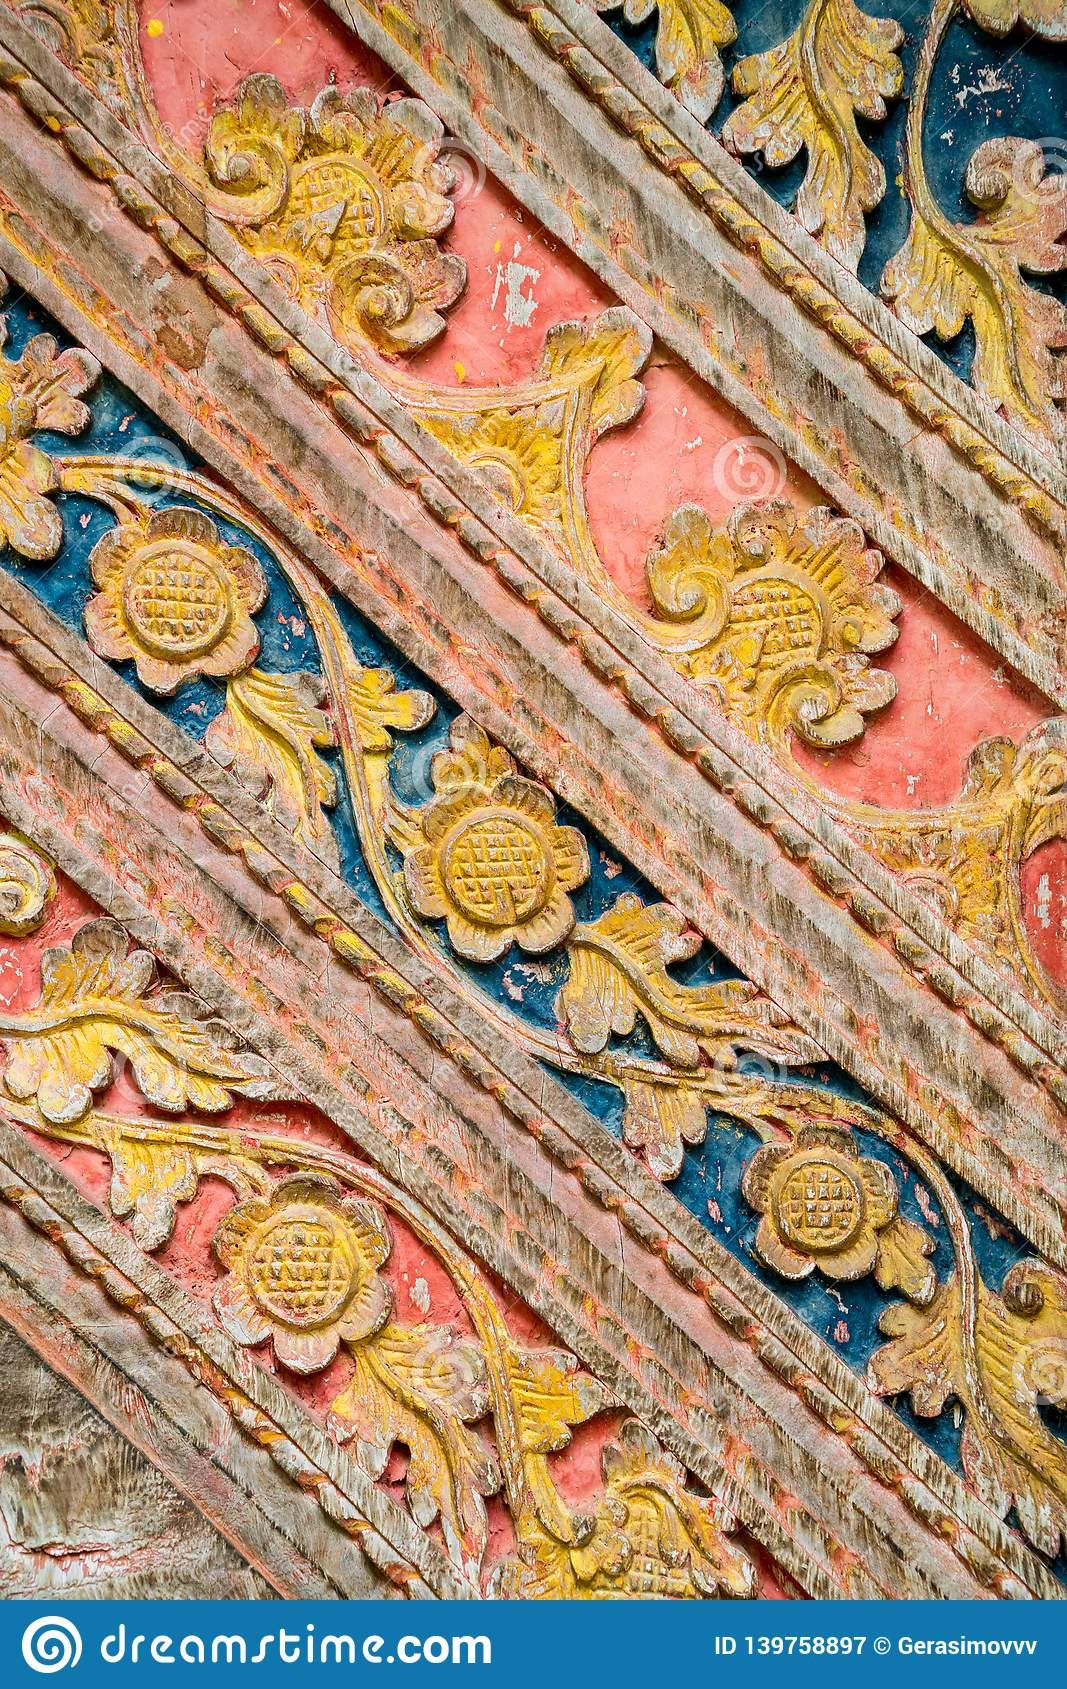 Details of traditional local balinese wood carving ornaments royalty free stock photography